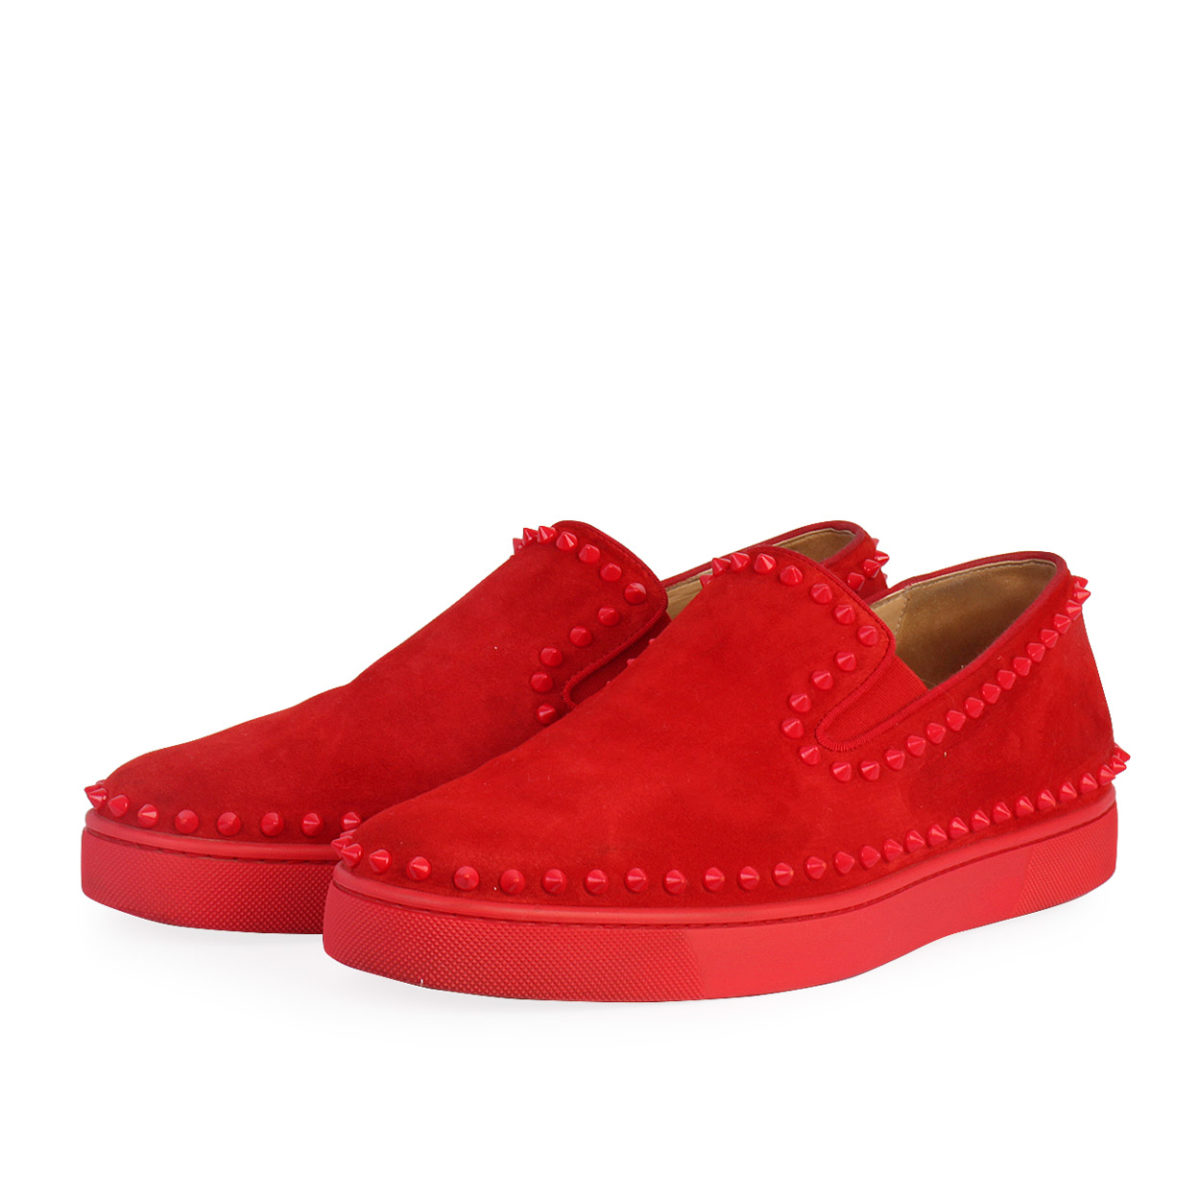 watch c74c5 8ea62 CHRISTIAN LOUBOUTIN Velours Pik Boat Veau Spikes Sneakers Red - S: 43.5 (9)